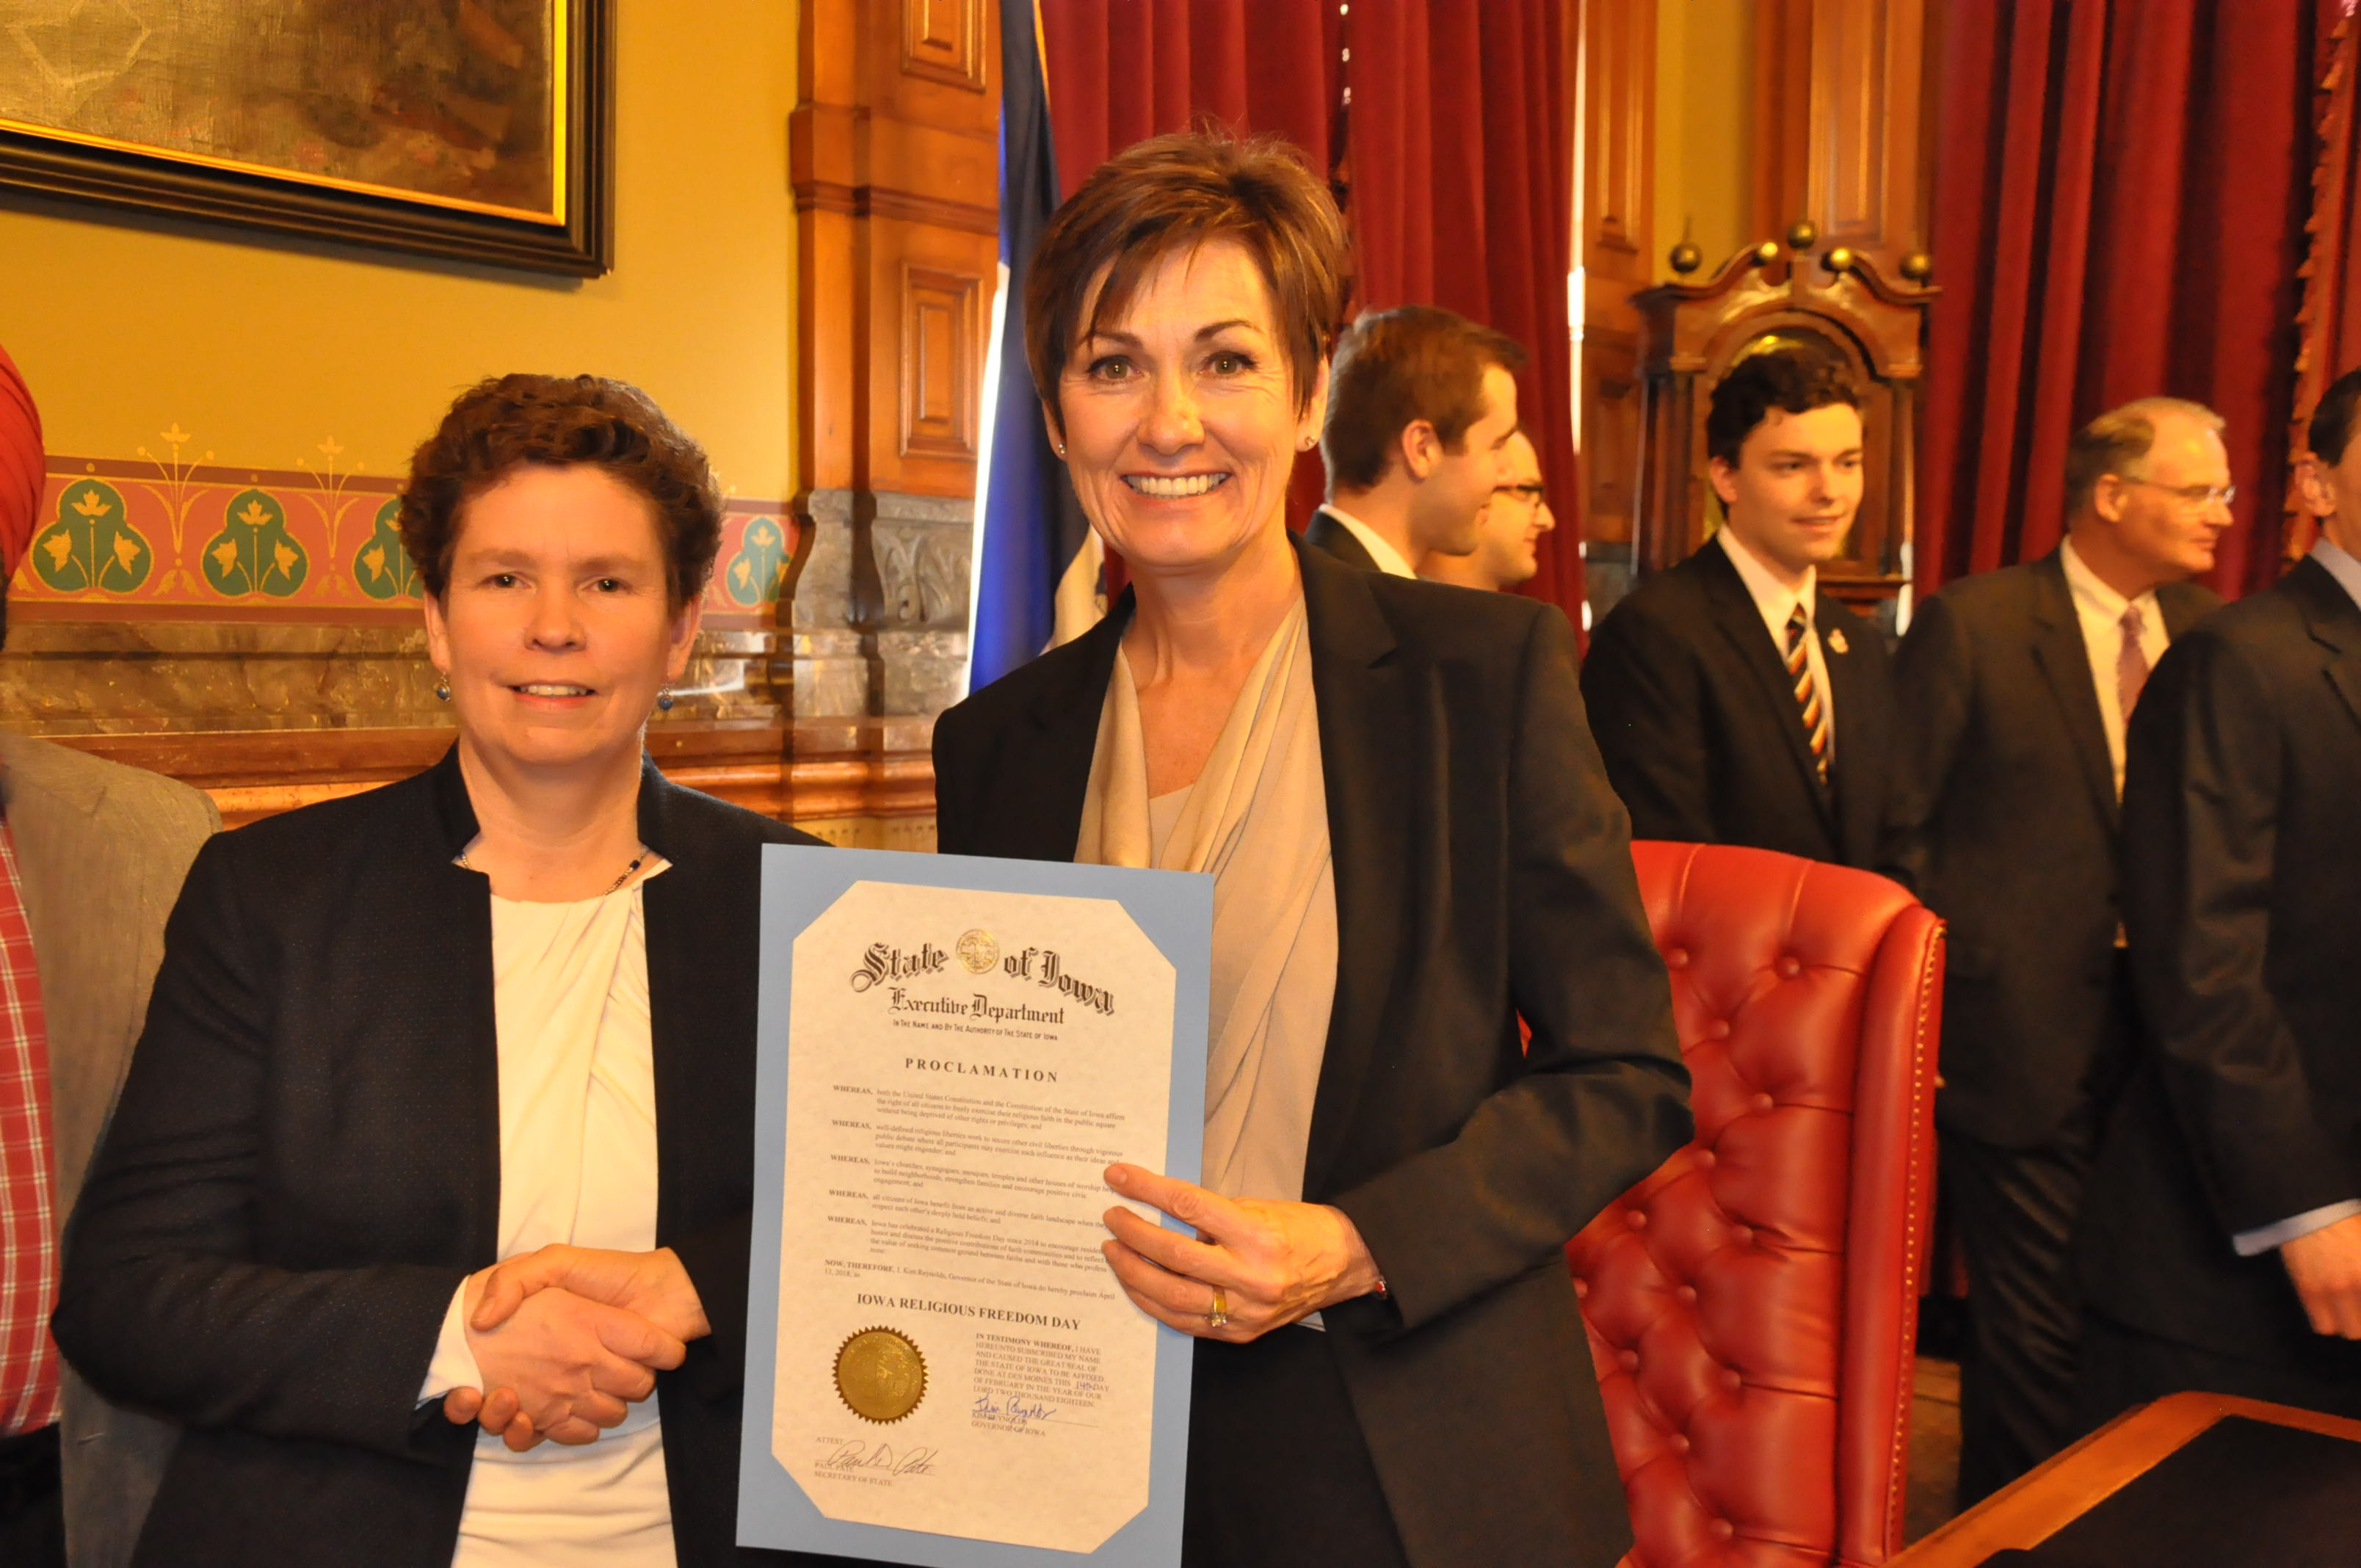 2018 proclamation governor reynolds pres